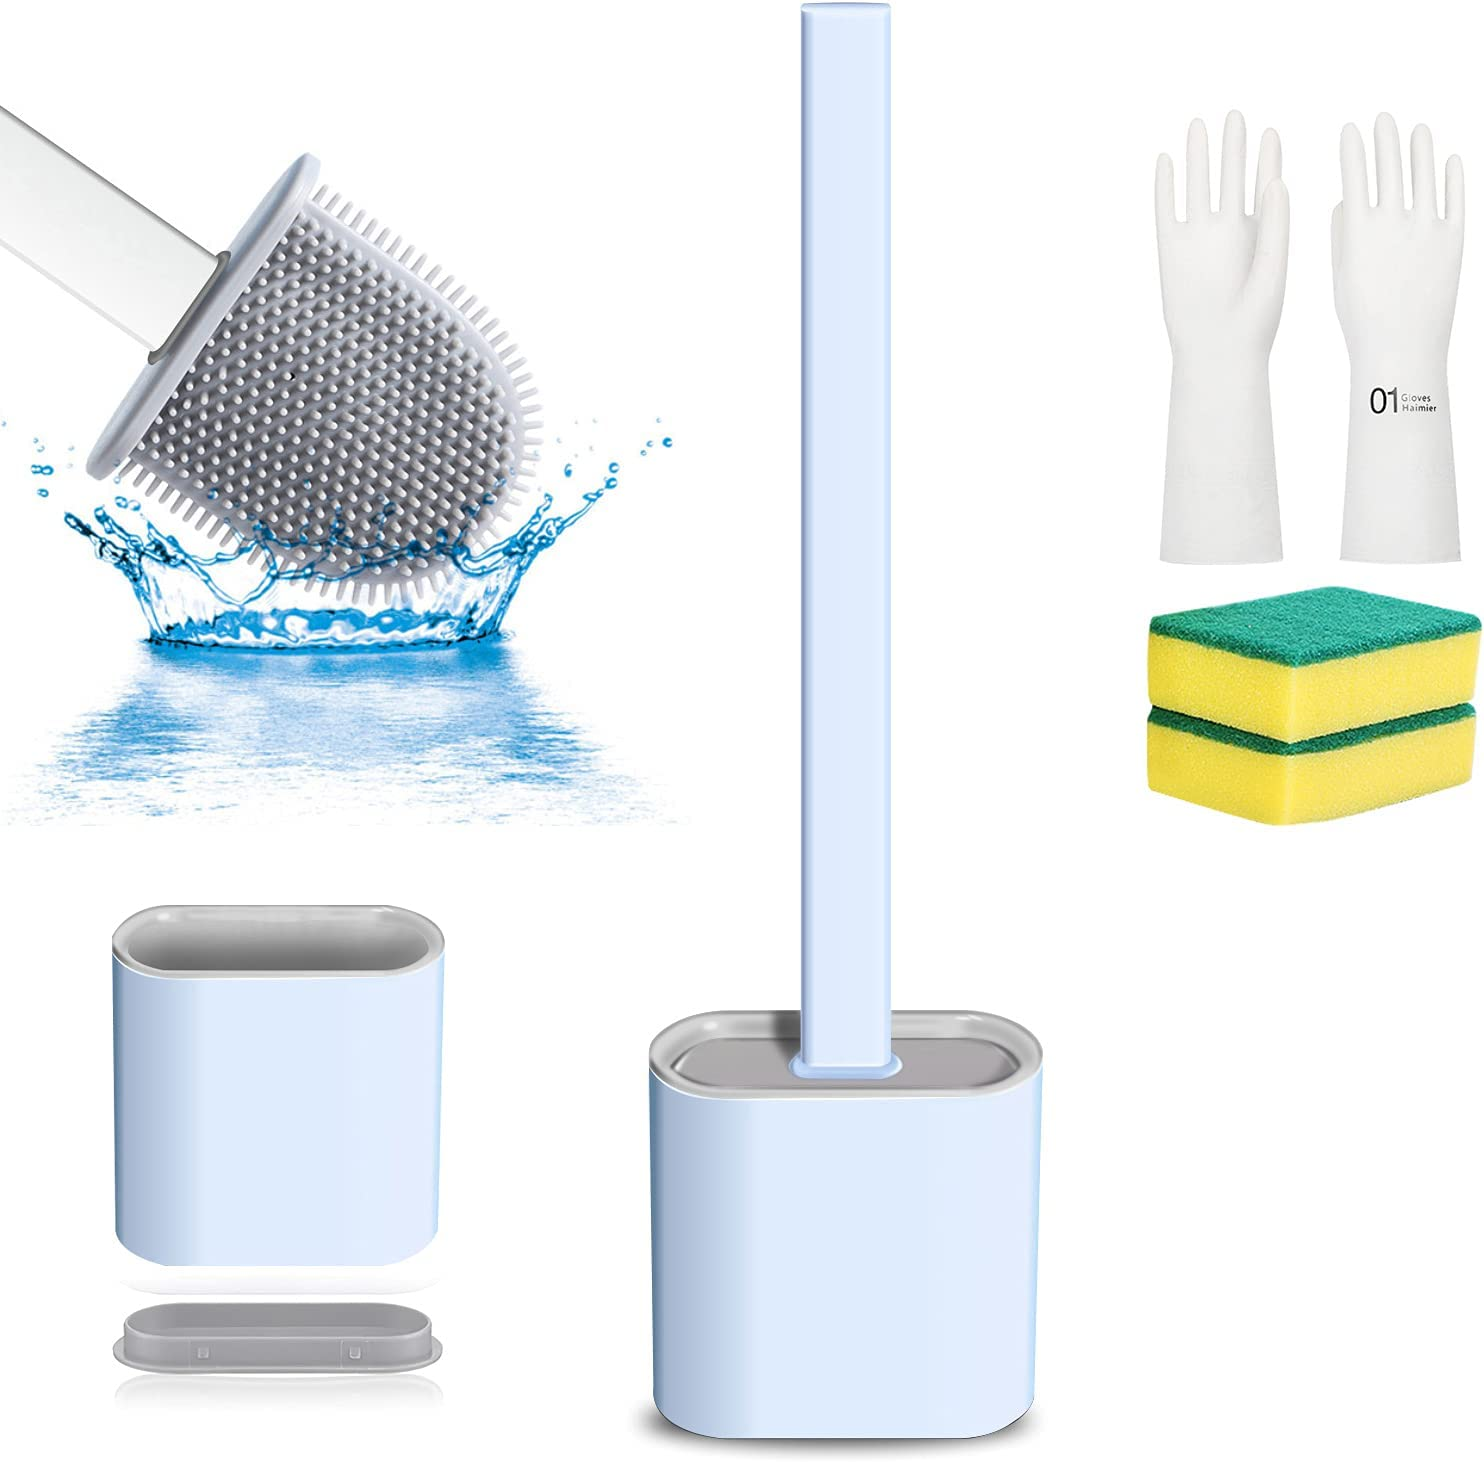 Outlet ☆ New product!! Free Shipping Toilet Brush Silicone Bowl Bathroom Holder and for